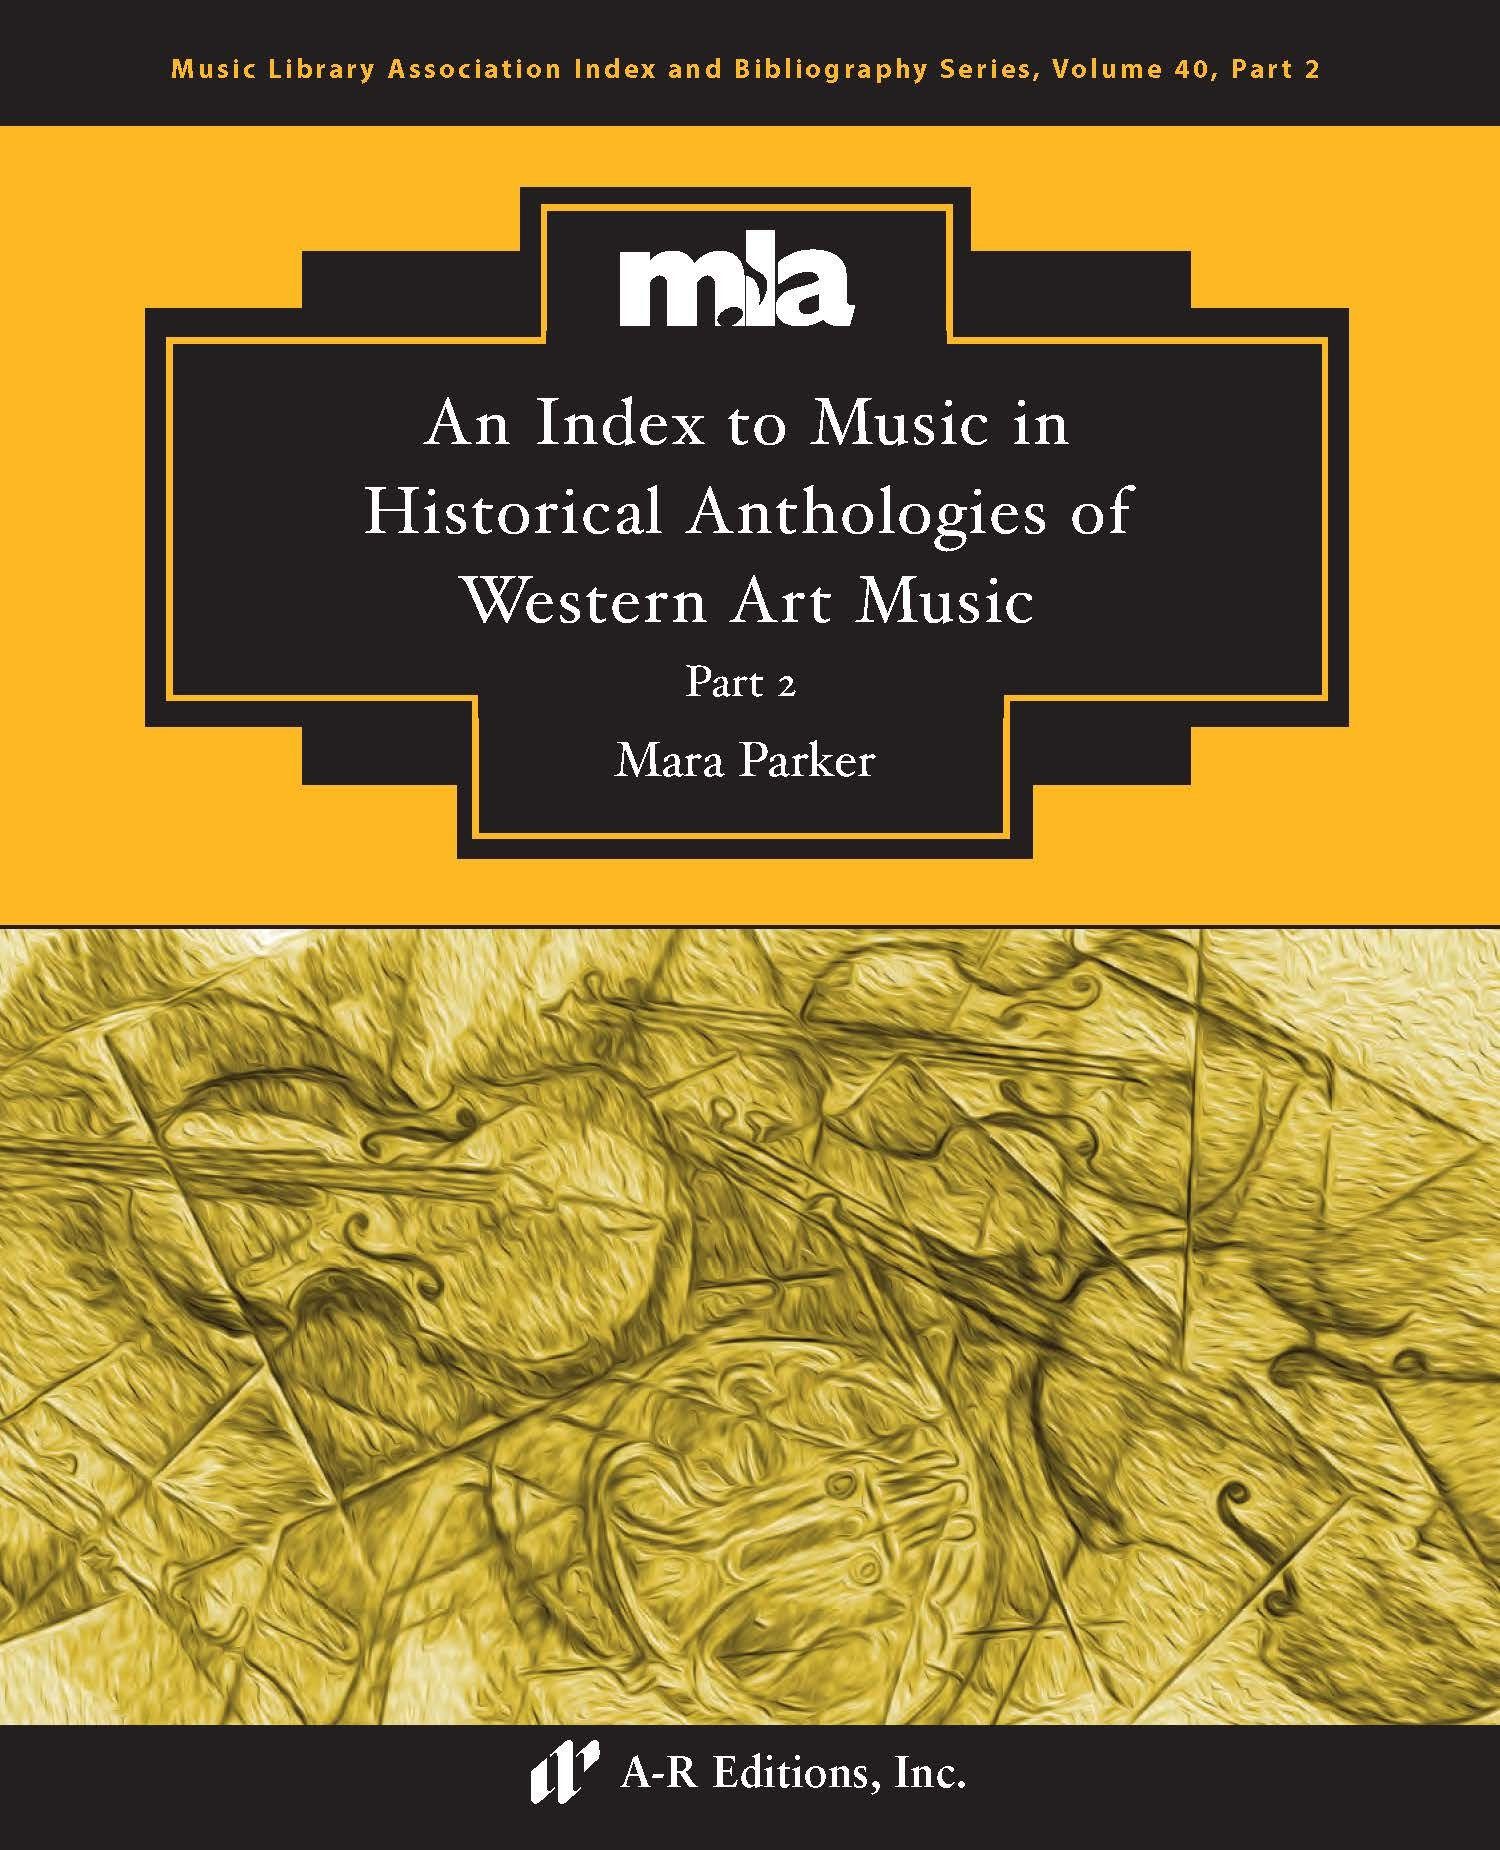 Parker: Index to Music in Historical Anthologies, Part 2